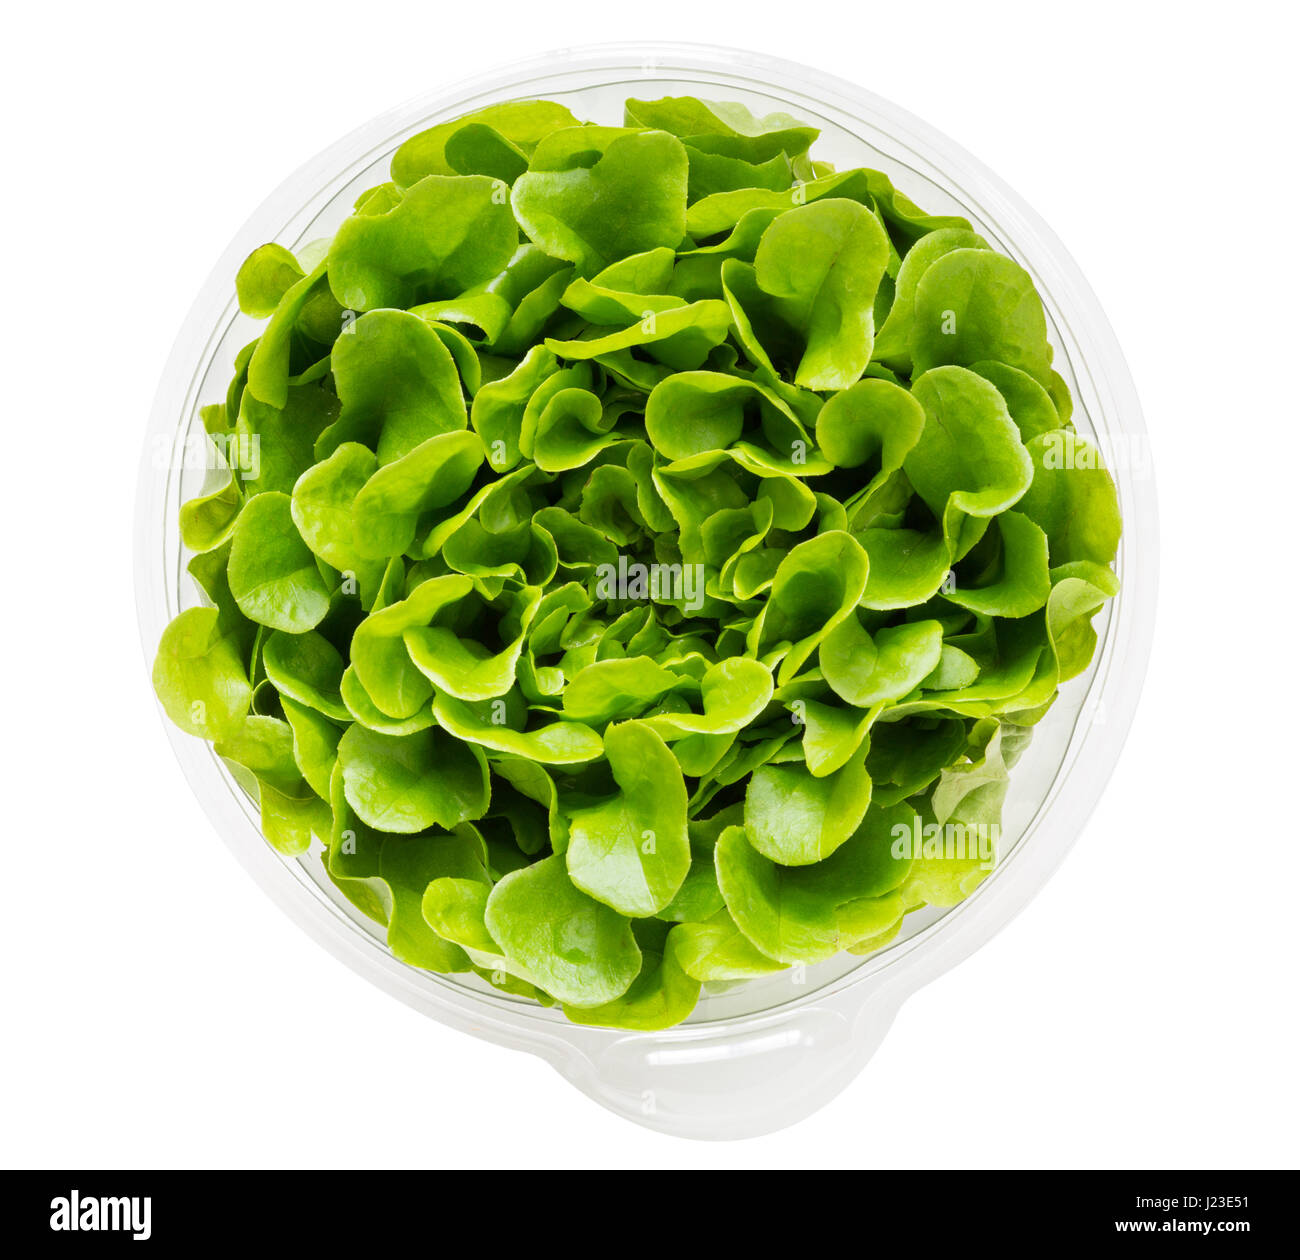 Growing lettuce in a pot - Salanova Lettuce Growing In Plastic Pot To Allow Individual Leaves To Be Picked Stock Image